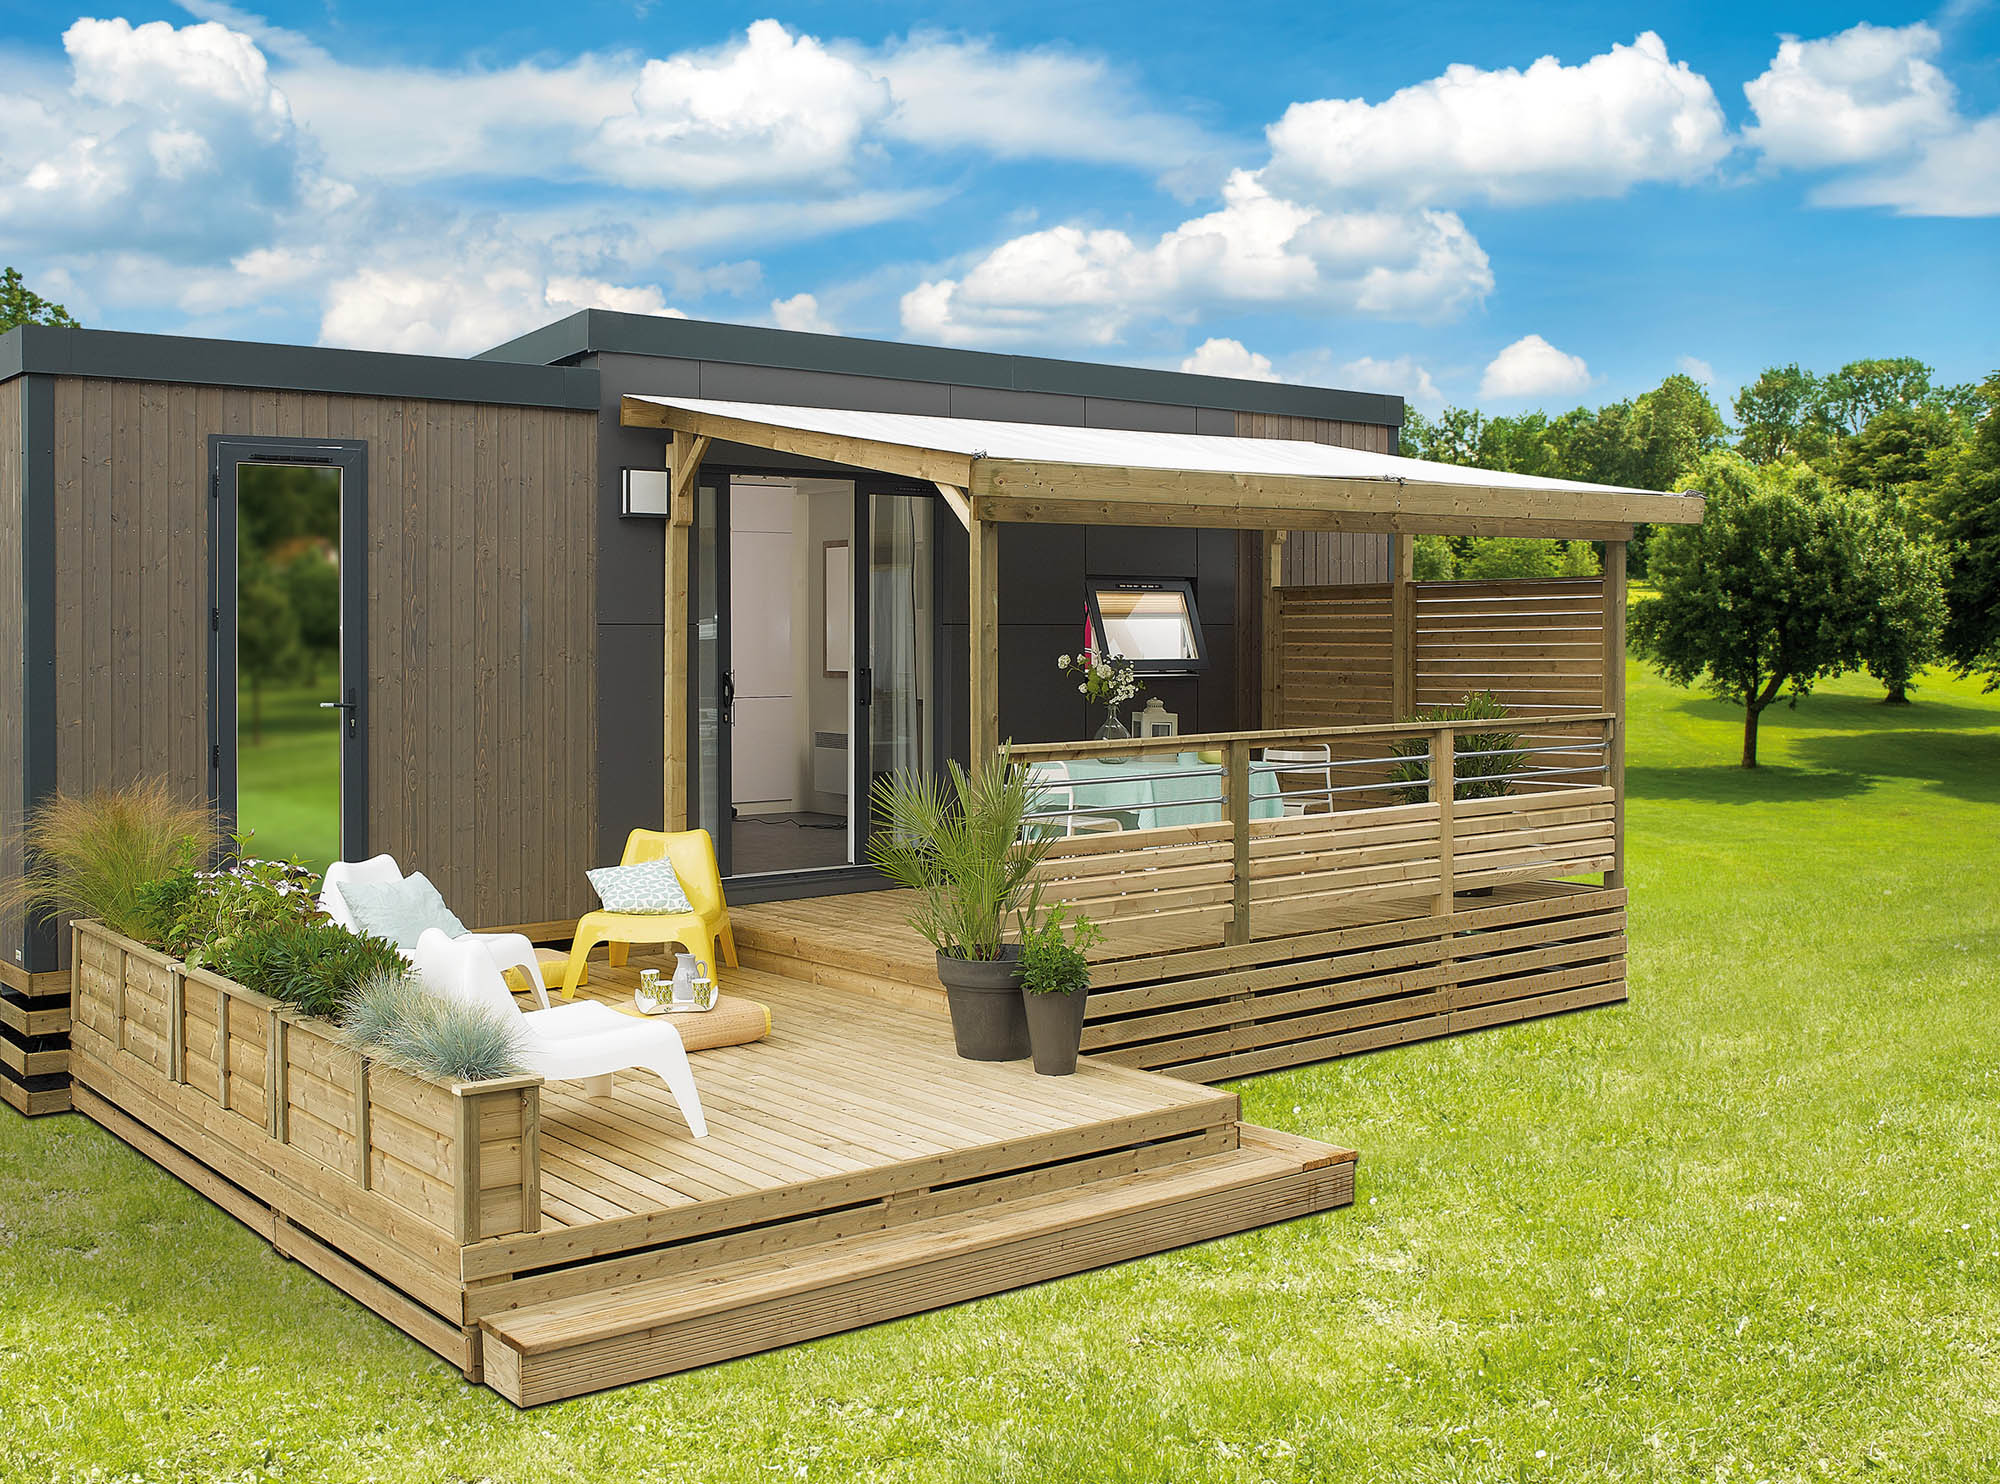 Terrasse couverte& semi couverte Terrasse bois mobil home All inclusive # Terrasse Bois Mobil Home